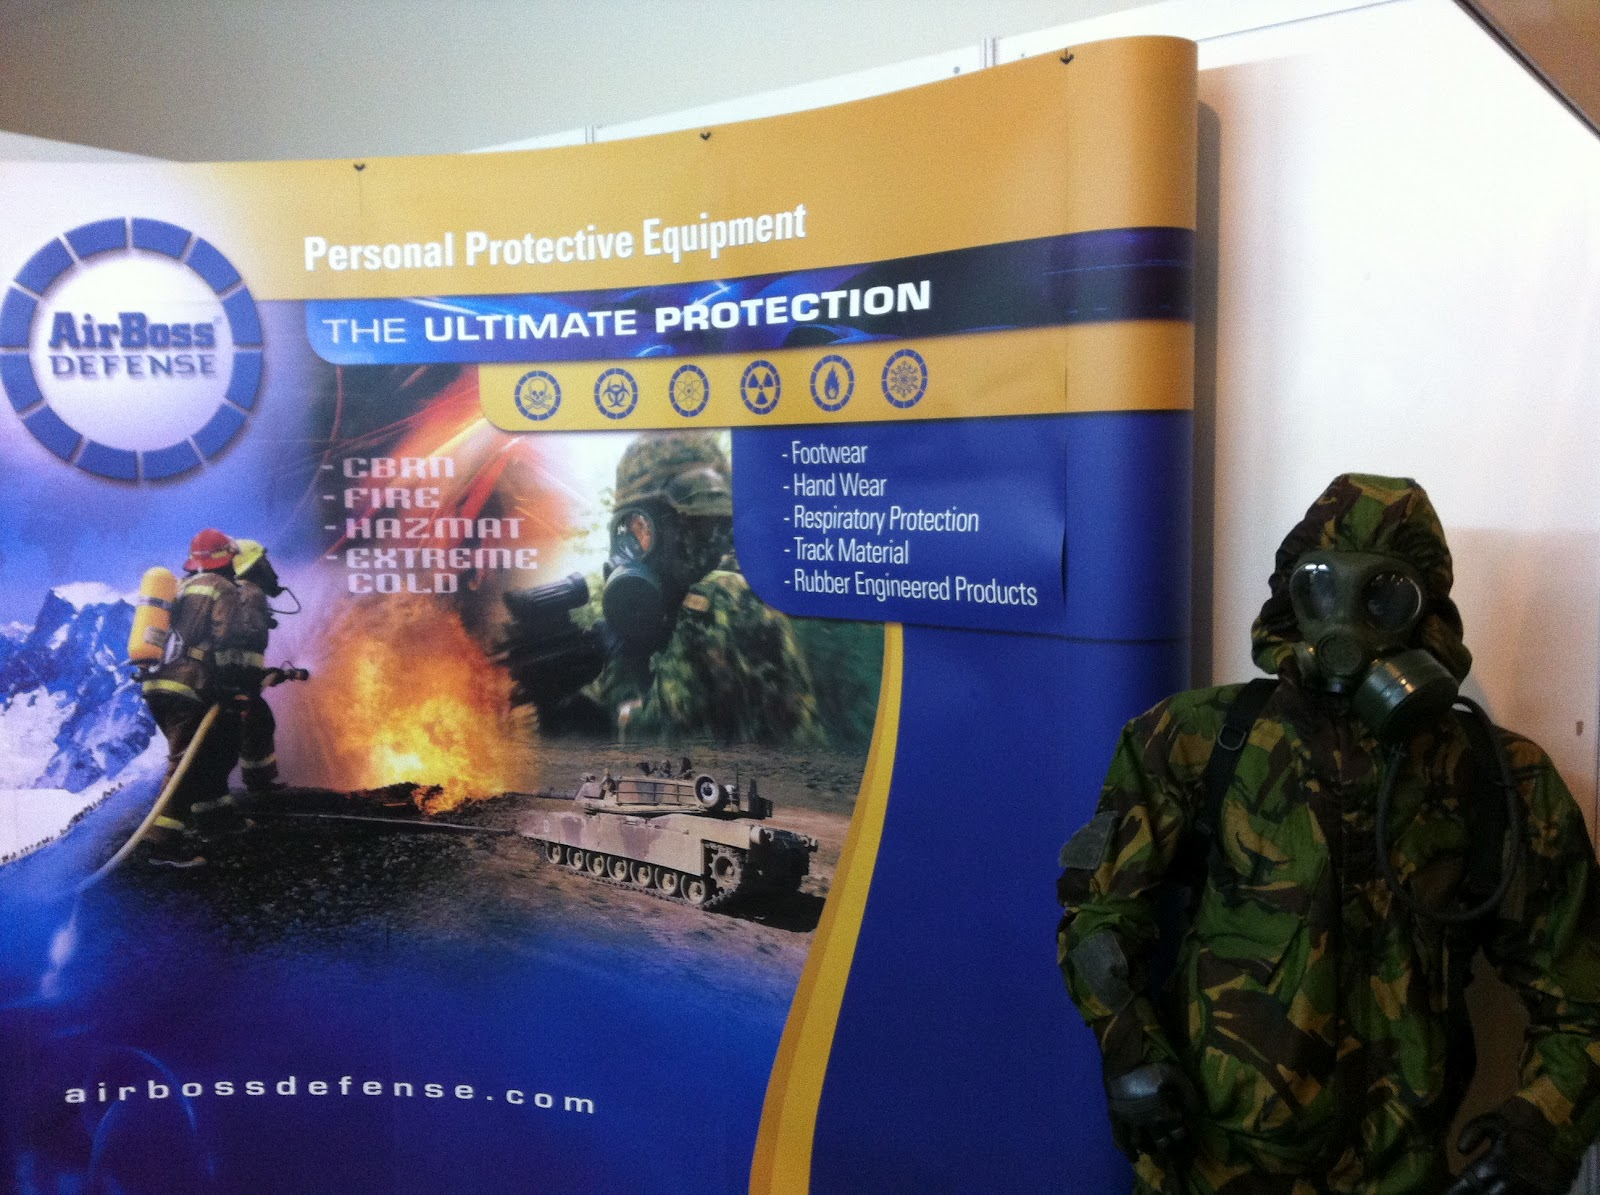 MILITARY TECHNOLOGY: DSA 2012 - AirBoss Defence's Extreme